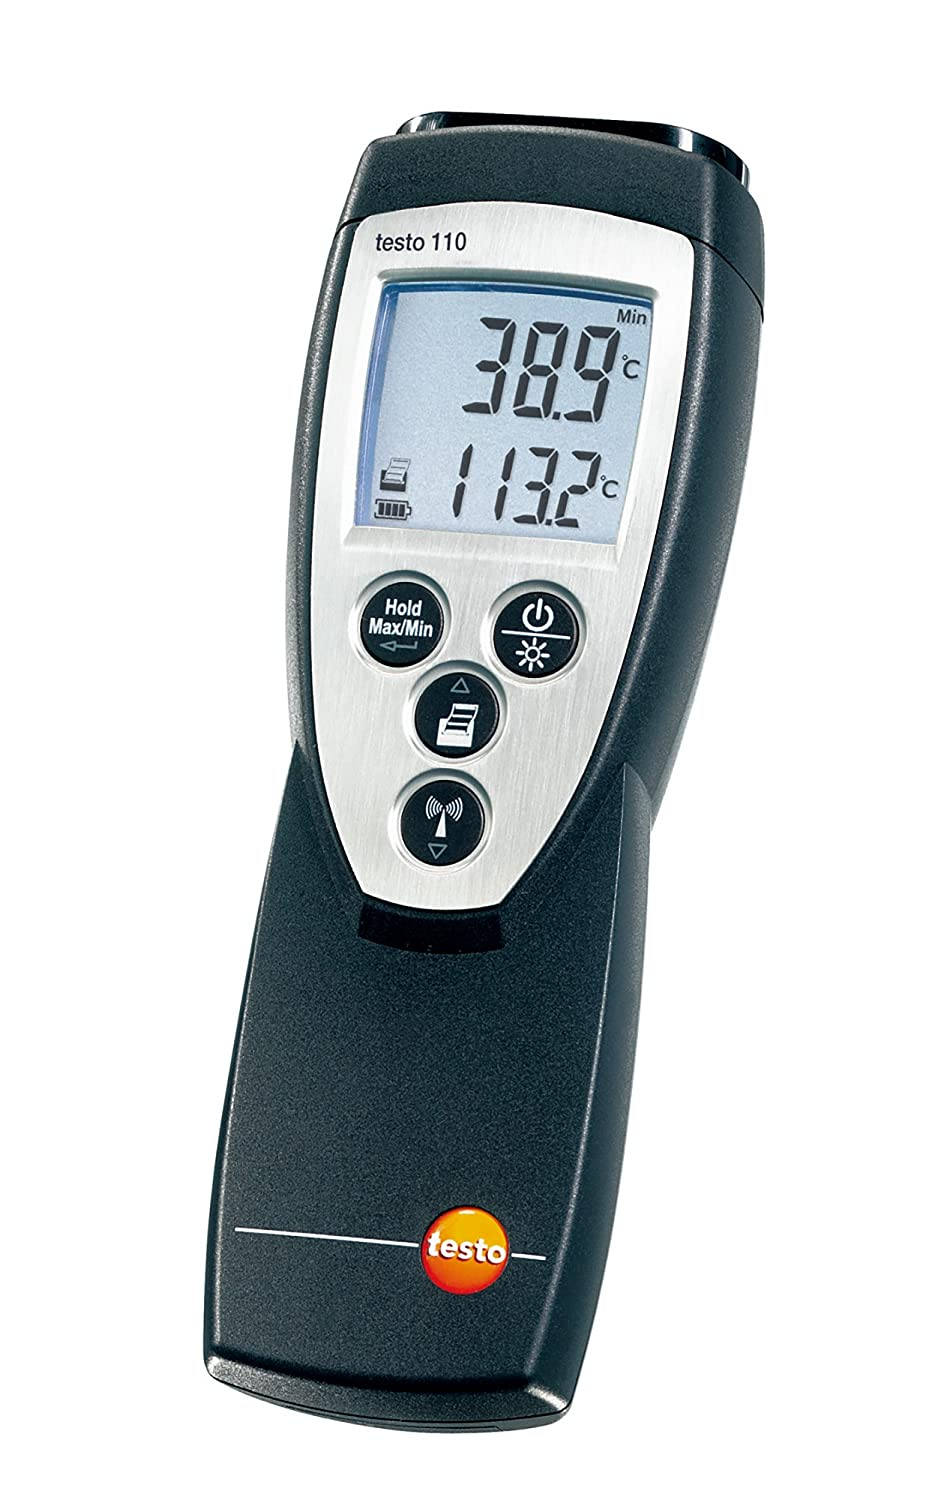 testo 110 - 1 Channel NTC Thermometer 0560 1108